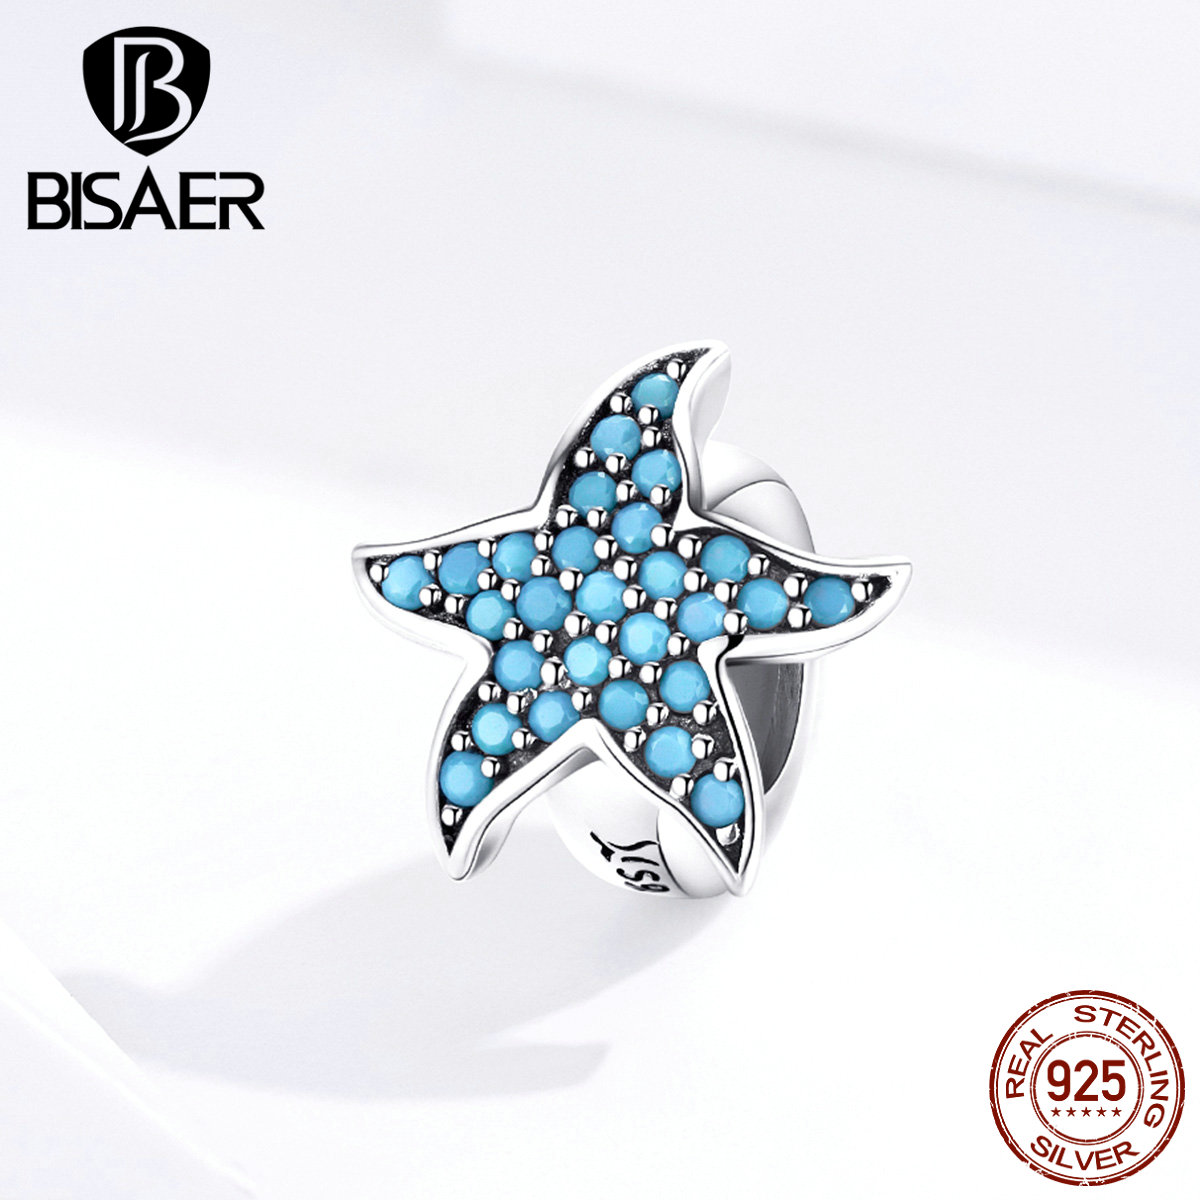 Starfish Beads BISAER 925 Sterling Silver Tropical Starfish Beads Blue Zircon Charms Fit Bracelets DIY Jewelry Making ECC1313